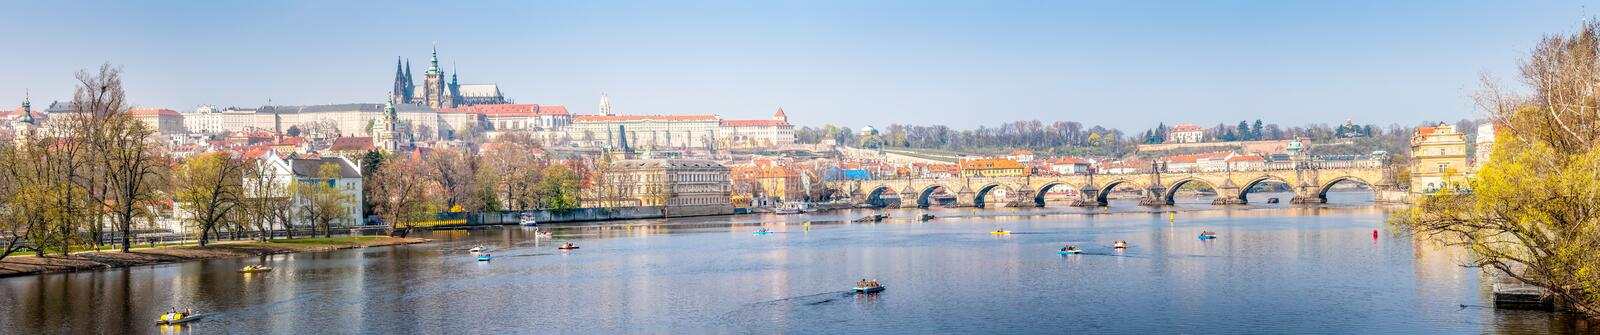 Panorama view of Prague Castle and the Vltava river royalty free stock photography